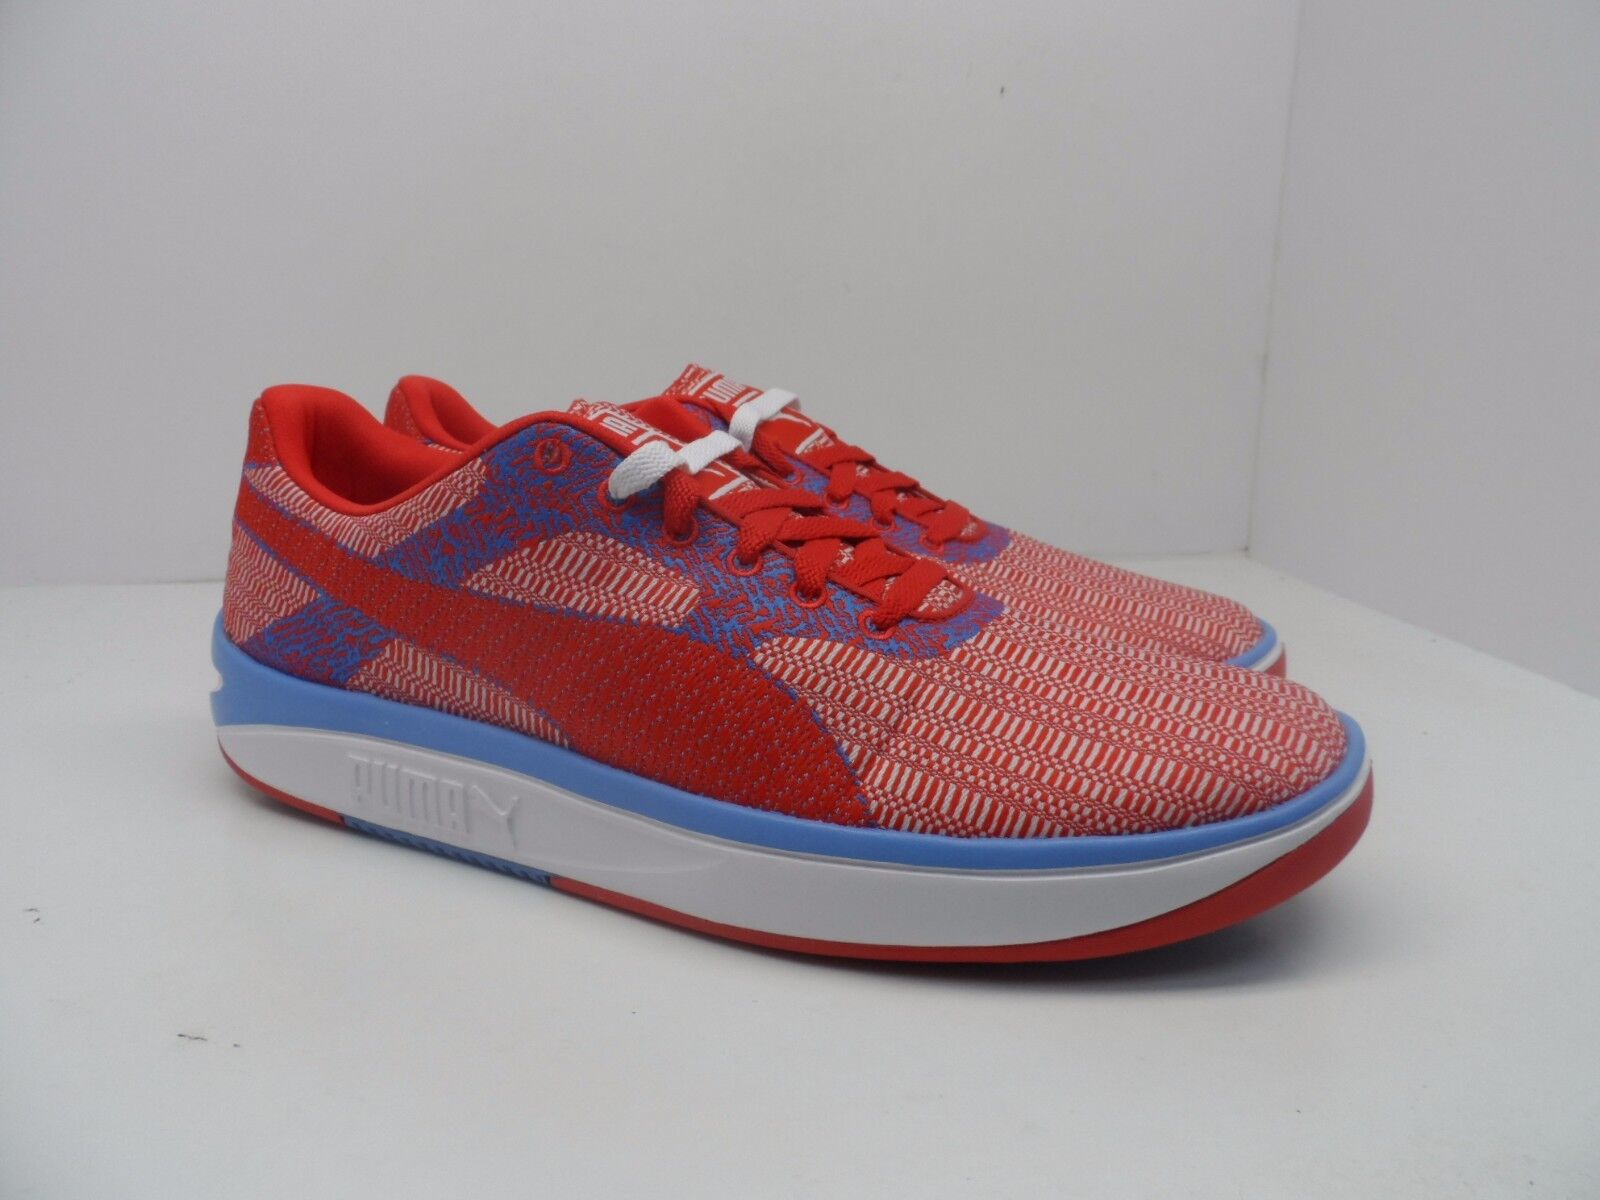 3545e9b73 Puma Men's GV 500 Mesh Athletic shoes High Risk Red Marina bluee Size 12M  Woven nobfvq6142-Men's Trainers